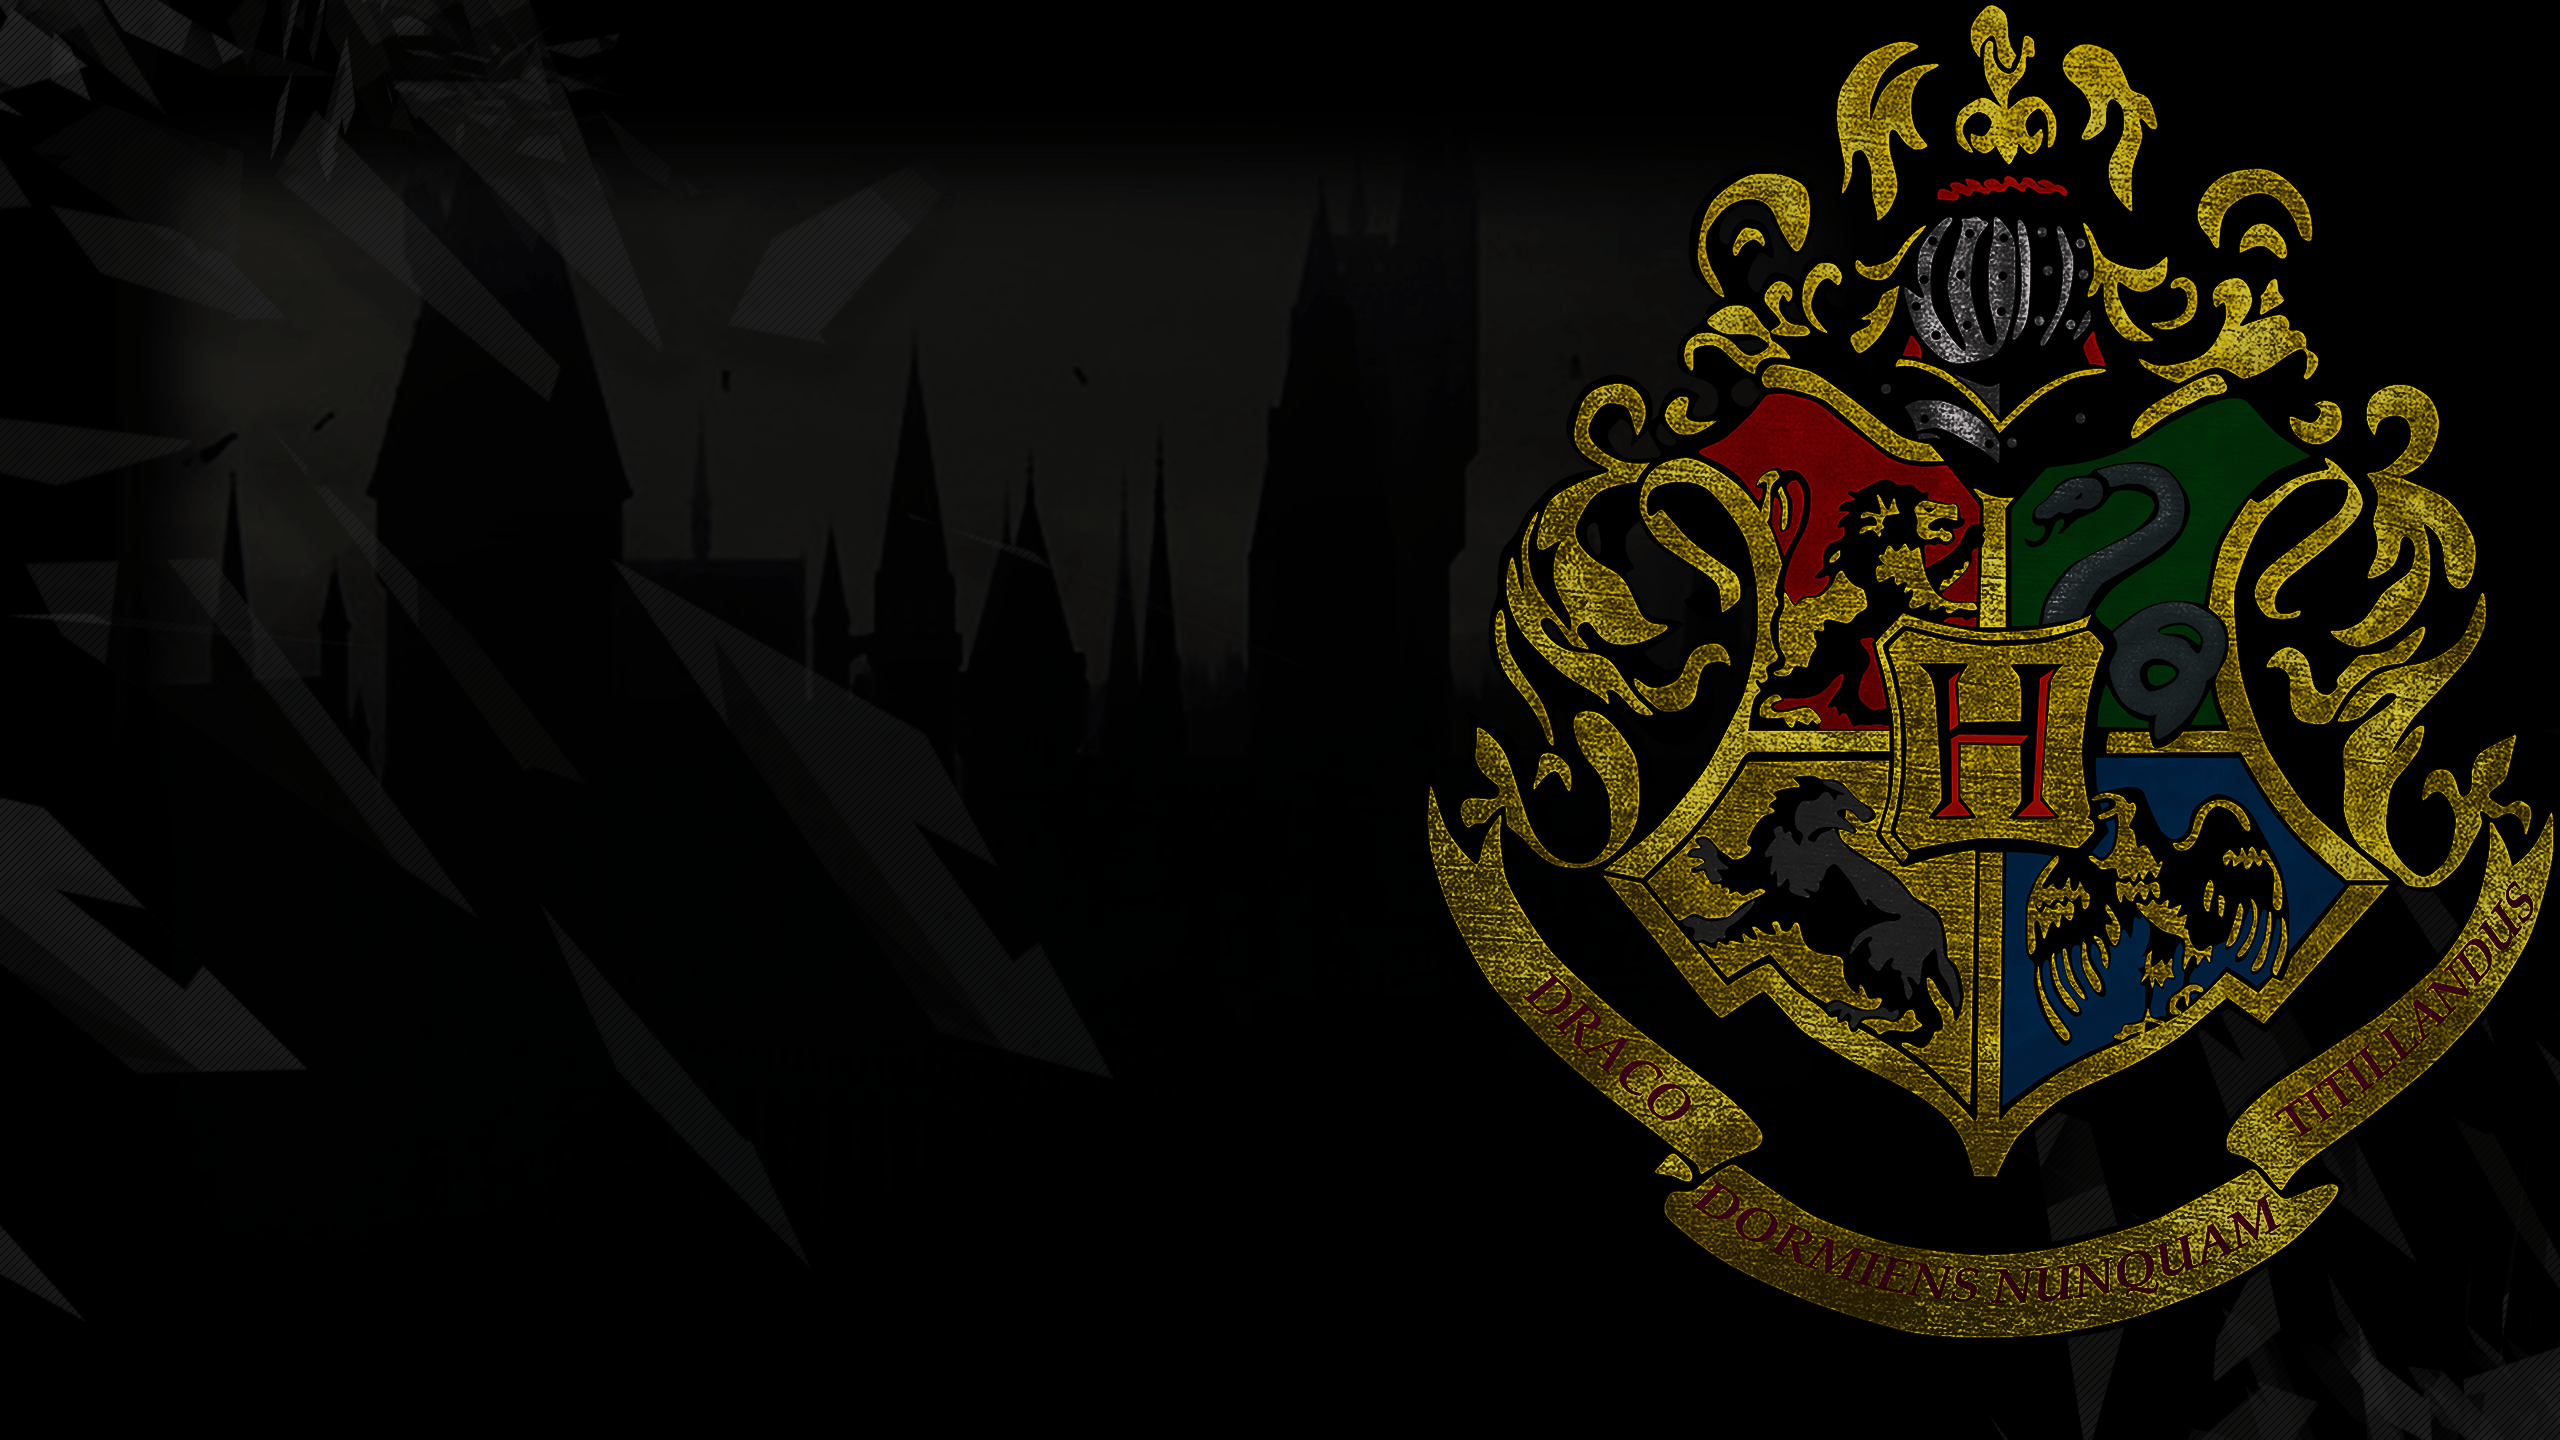 2560x1440 71 Harry Potter HD Wallpapers | Background Images - Wallpaper Abyss